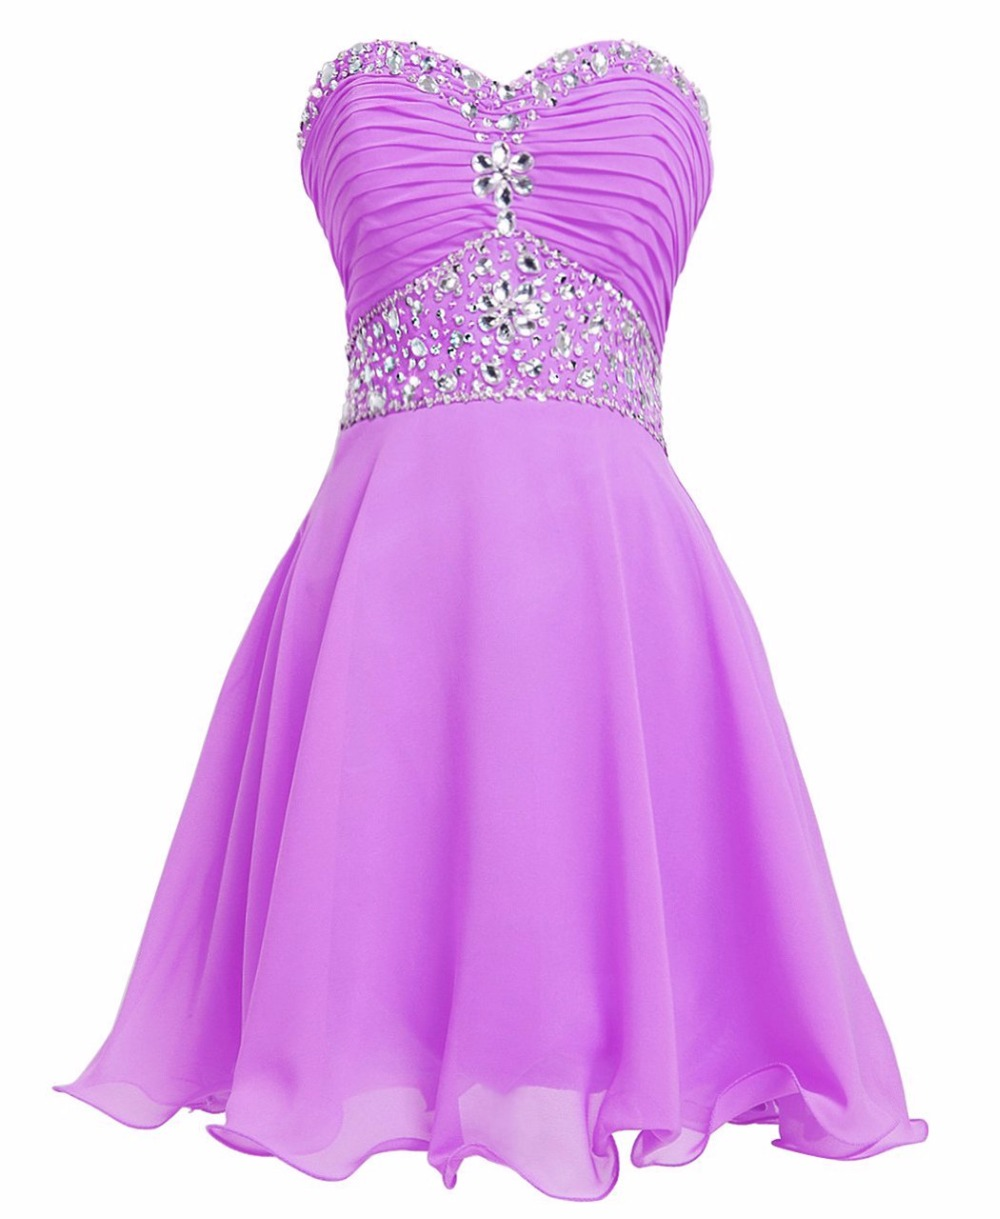 Aliexpress buy sweetheart short bridesmaids dress cheap aliexpress buy sweetheart short bridesmaids dress cheap formal dress for wedding party mint green bridesmaid dresses purple pink from reliable short ombrellifo Gallery